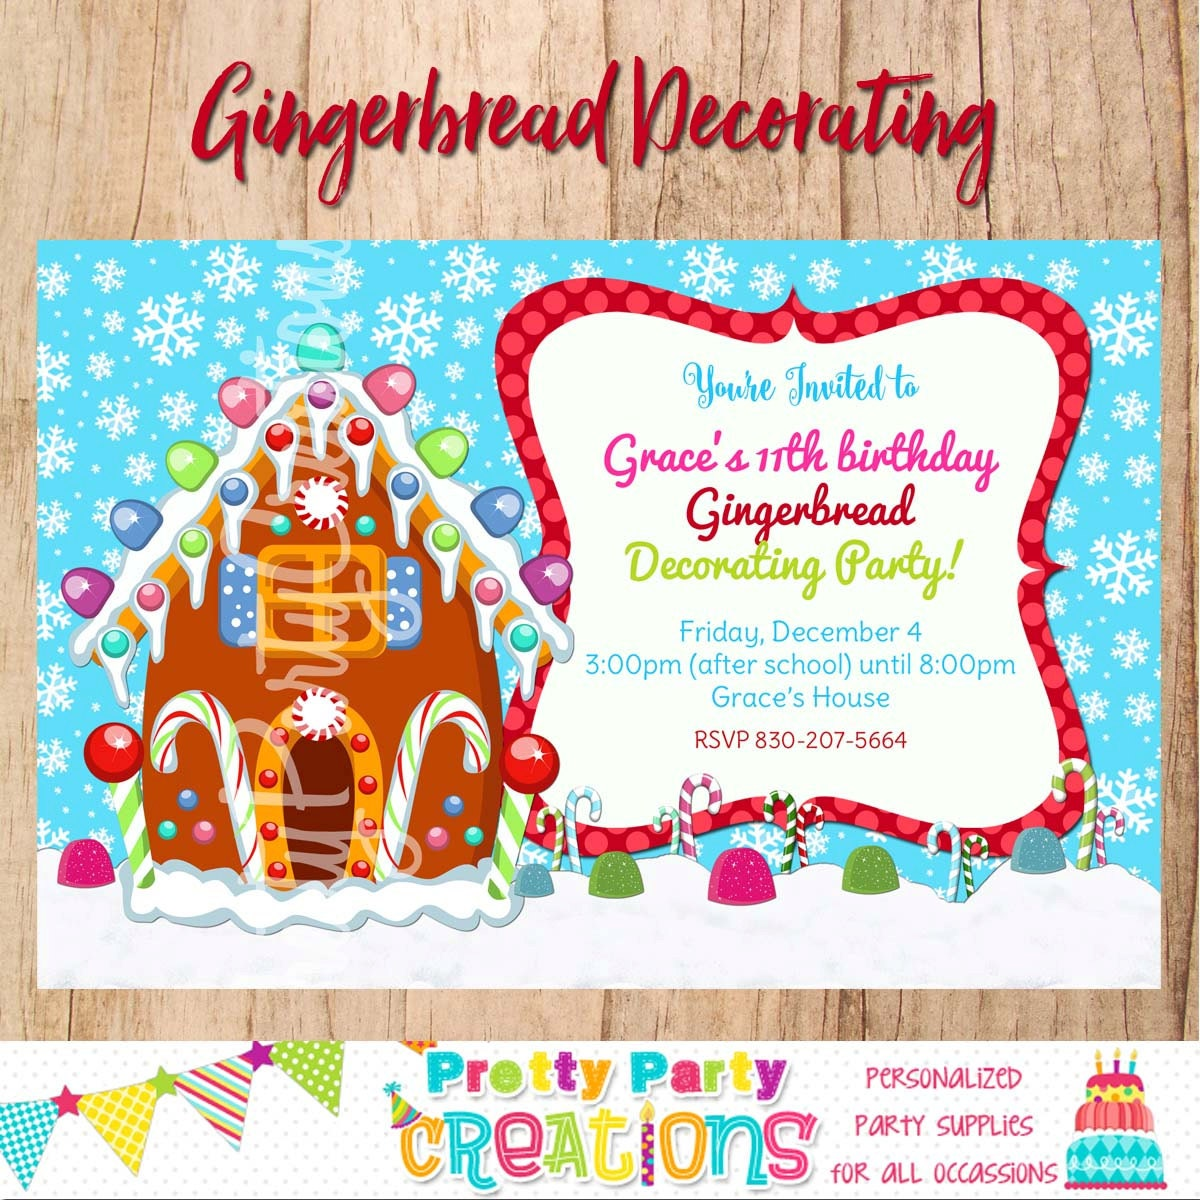 Gingerbread house invitation you print Gingerbread house decorating party invitations